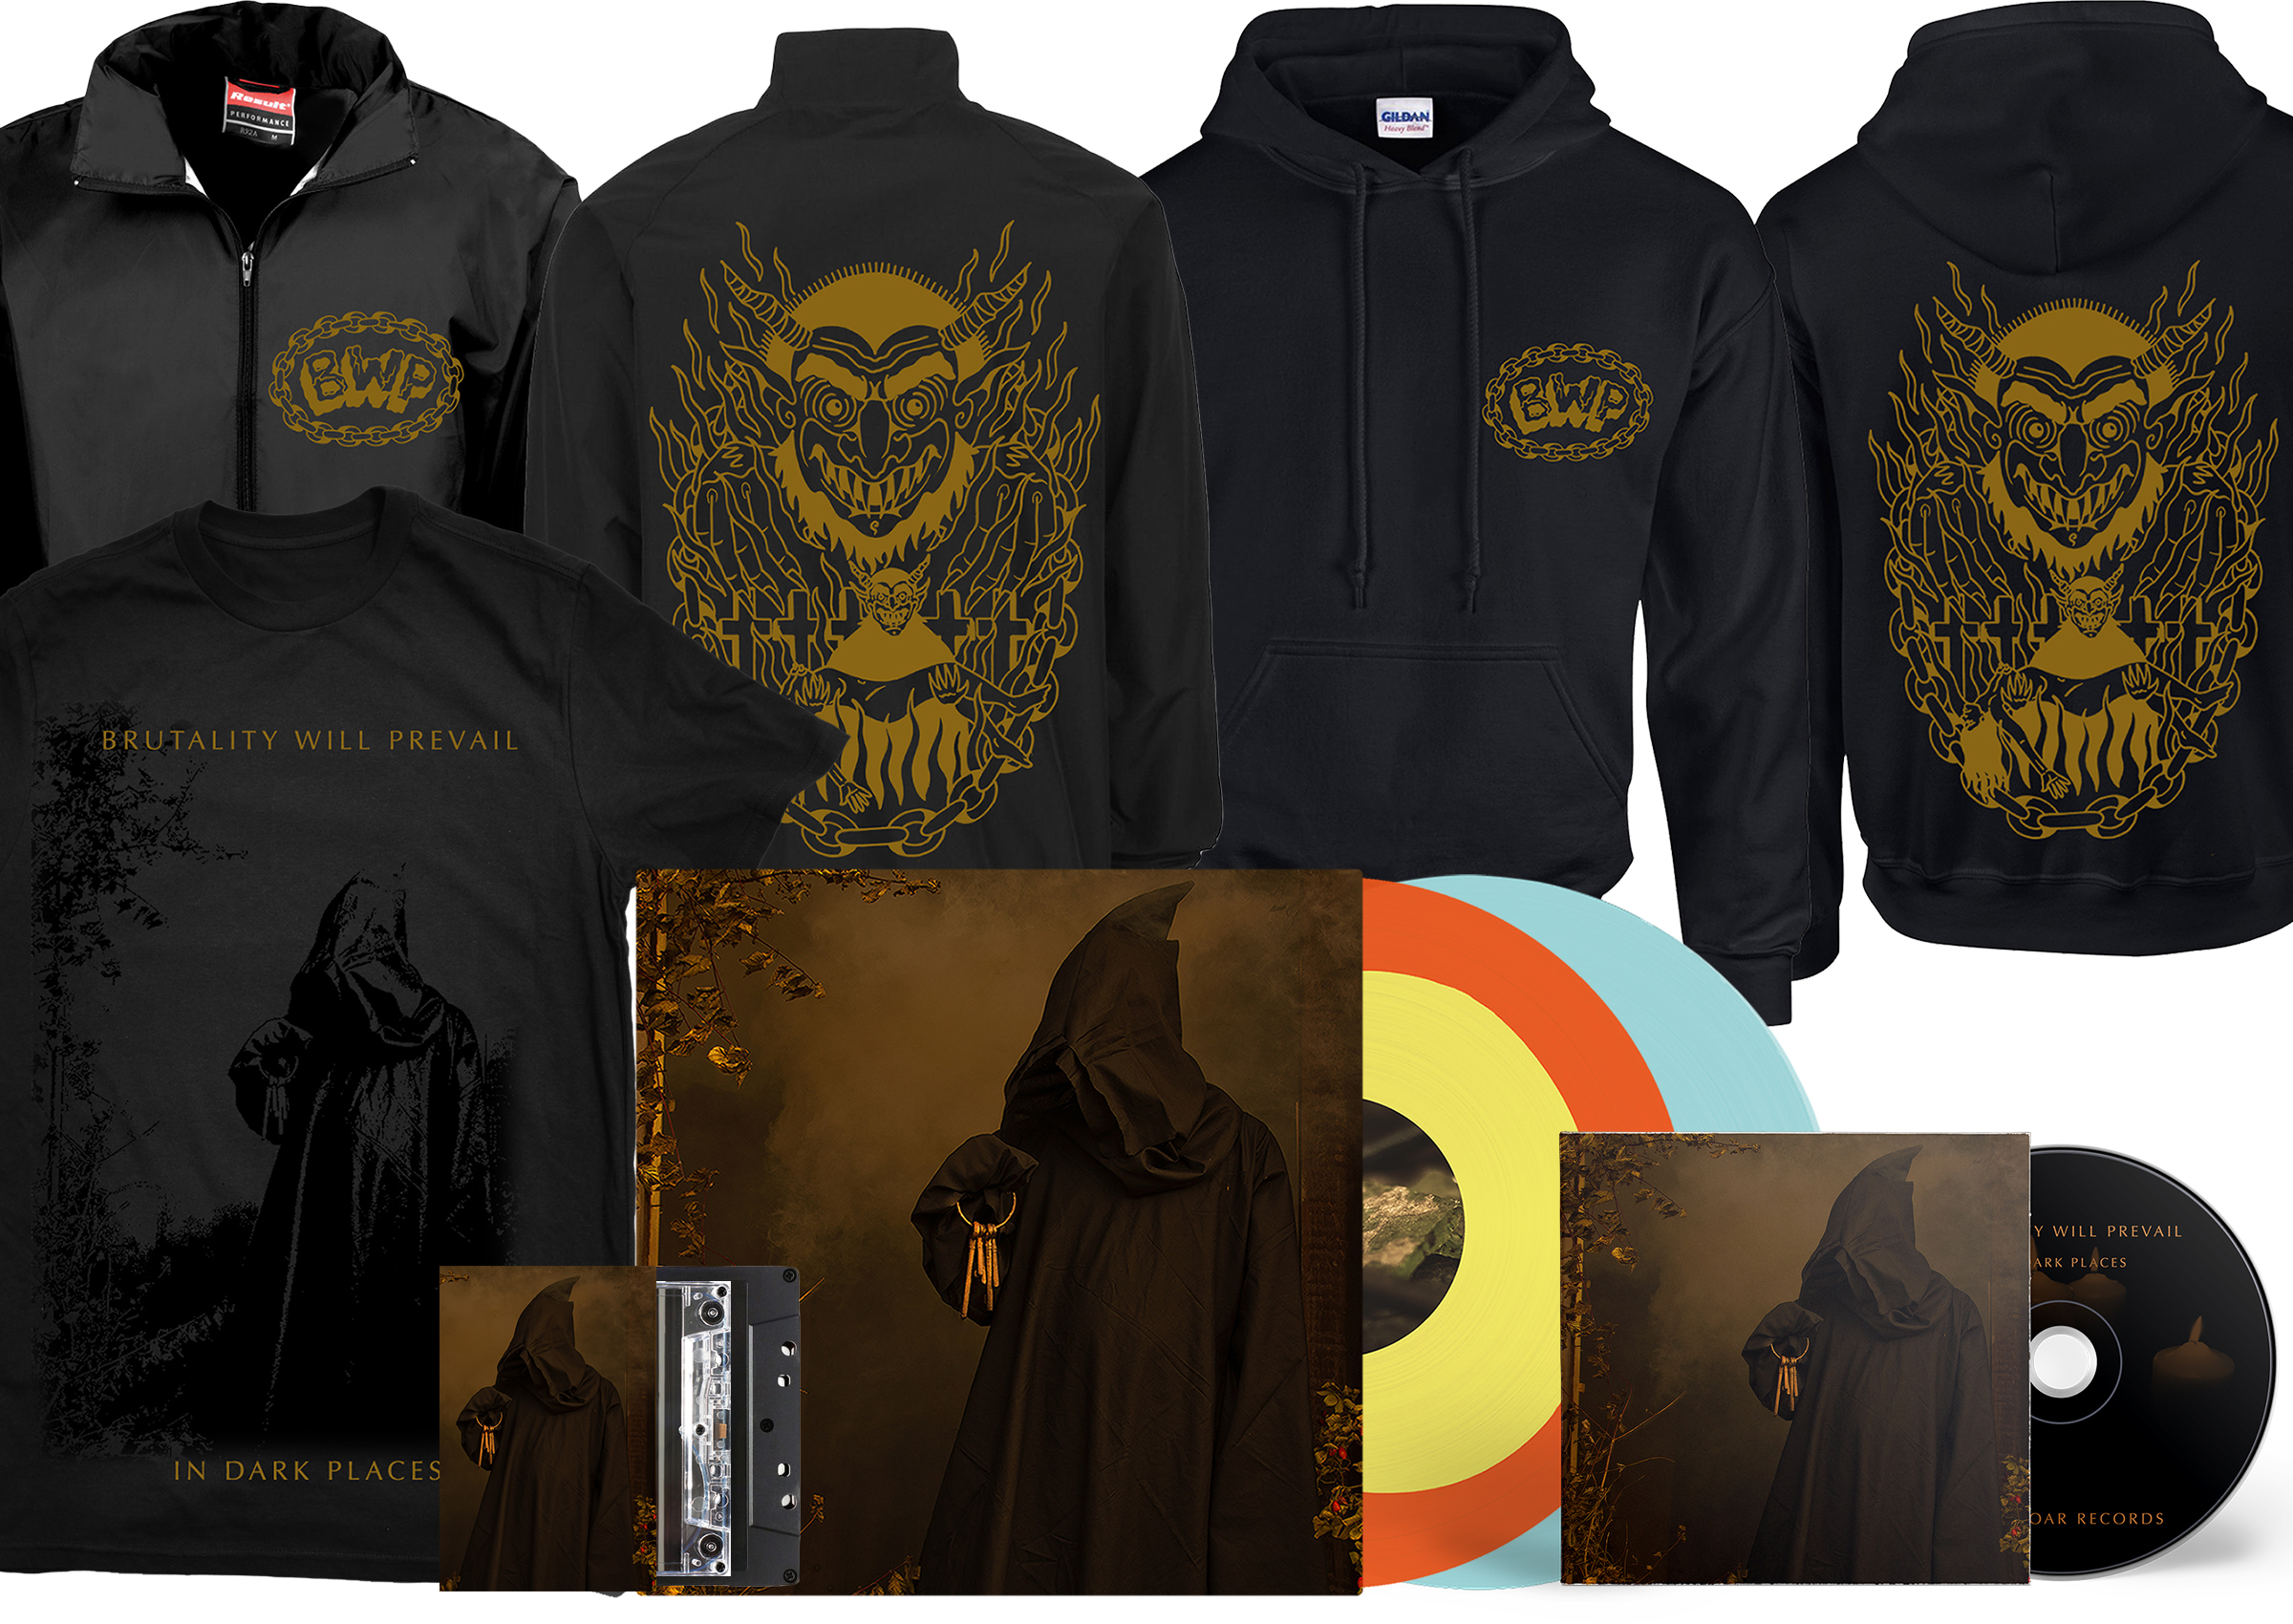 Brutality Will Prevail - In Dark Places LP + CD + cassette + merch bundle